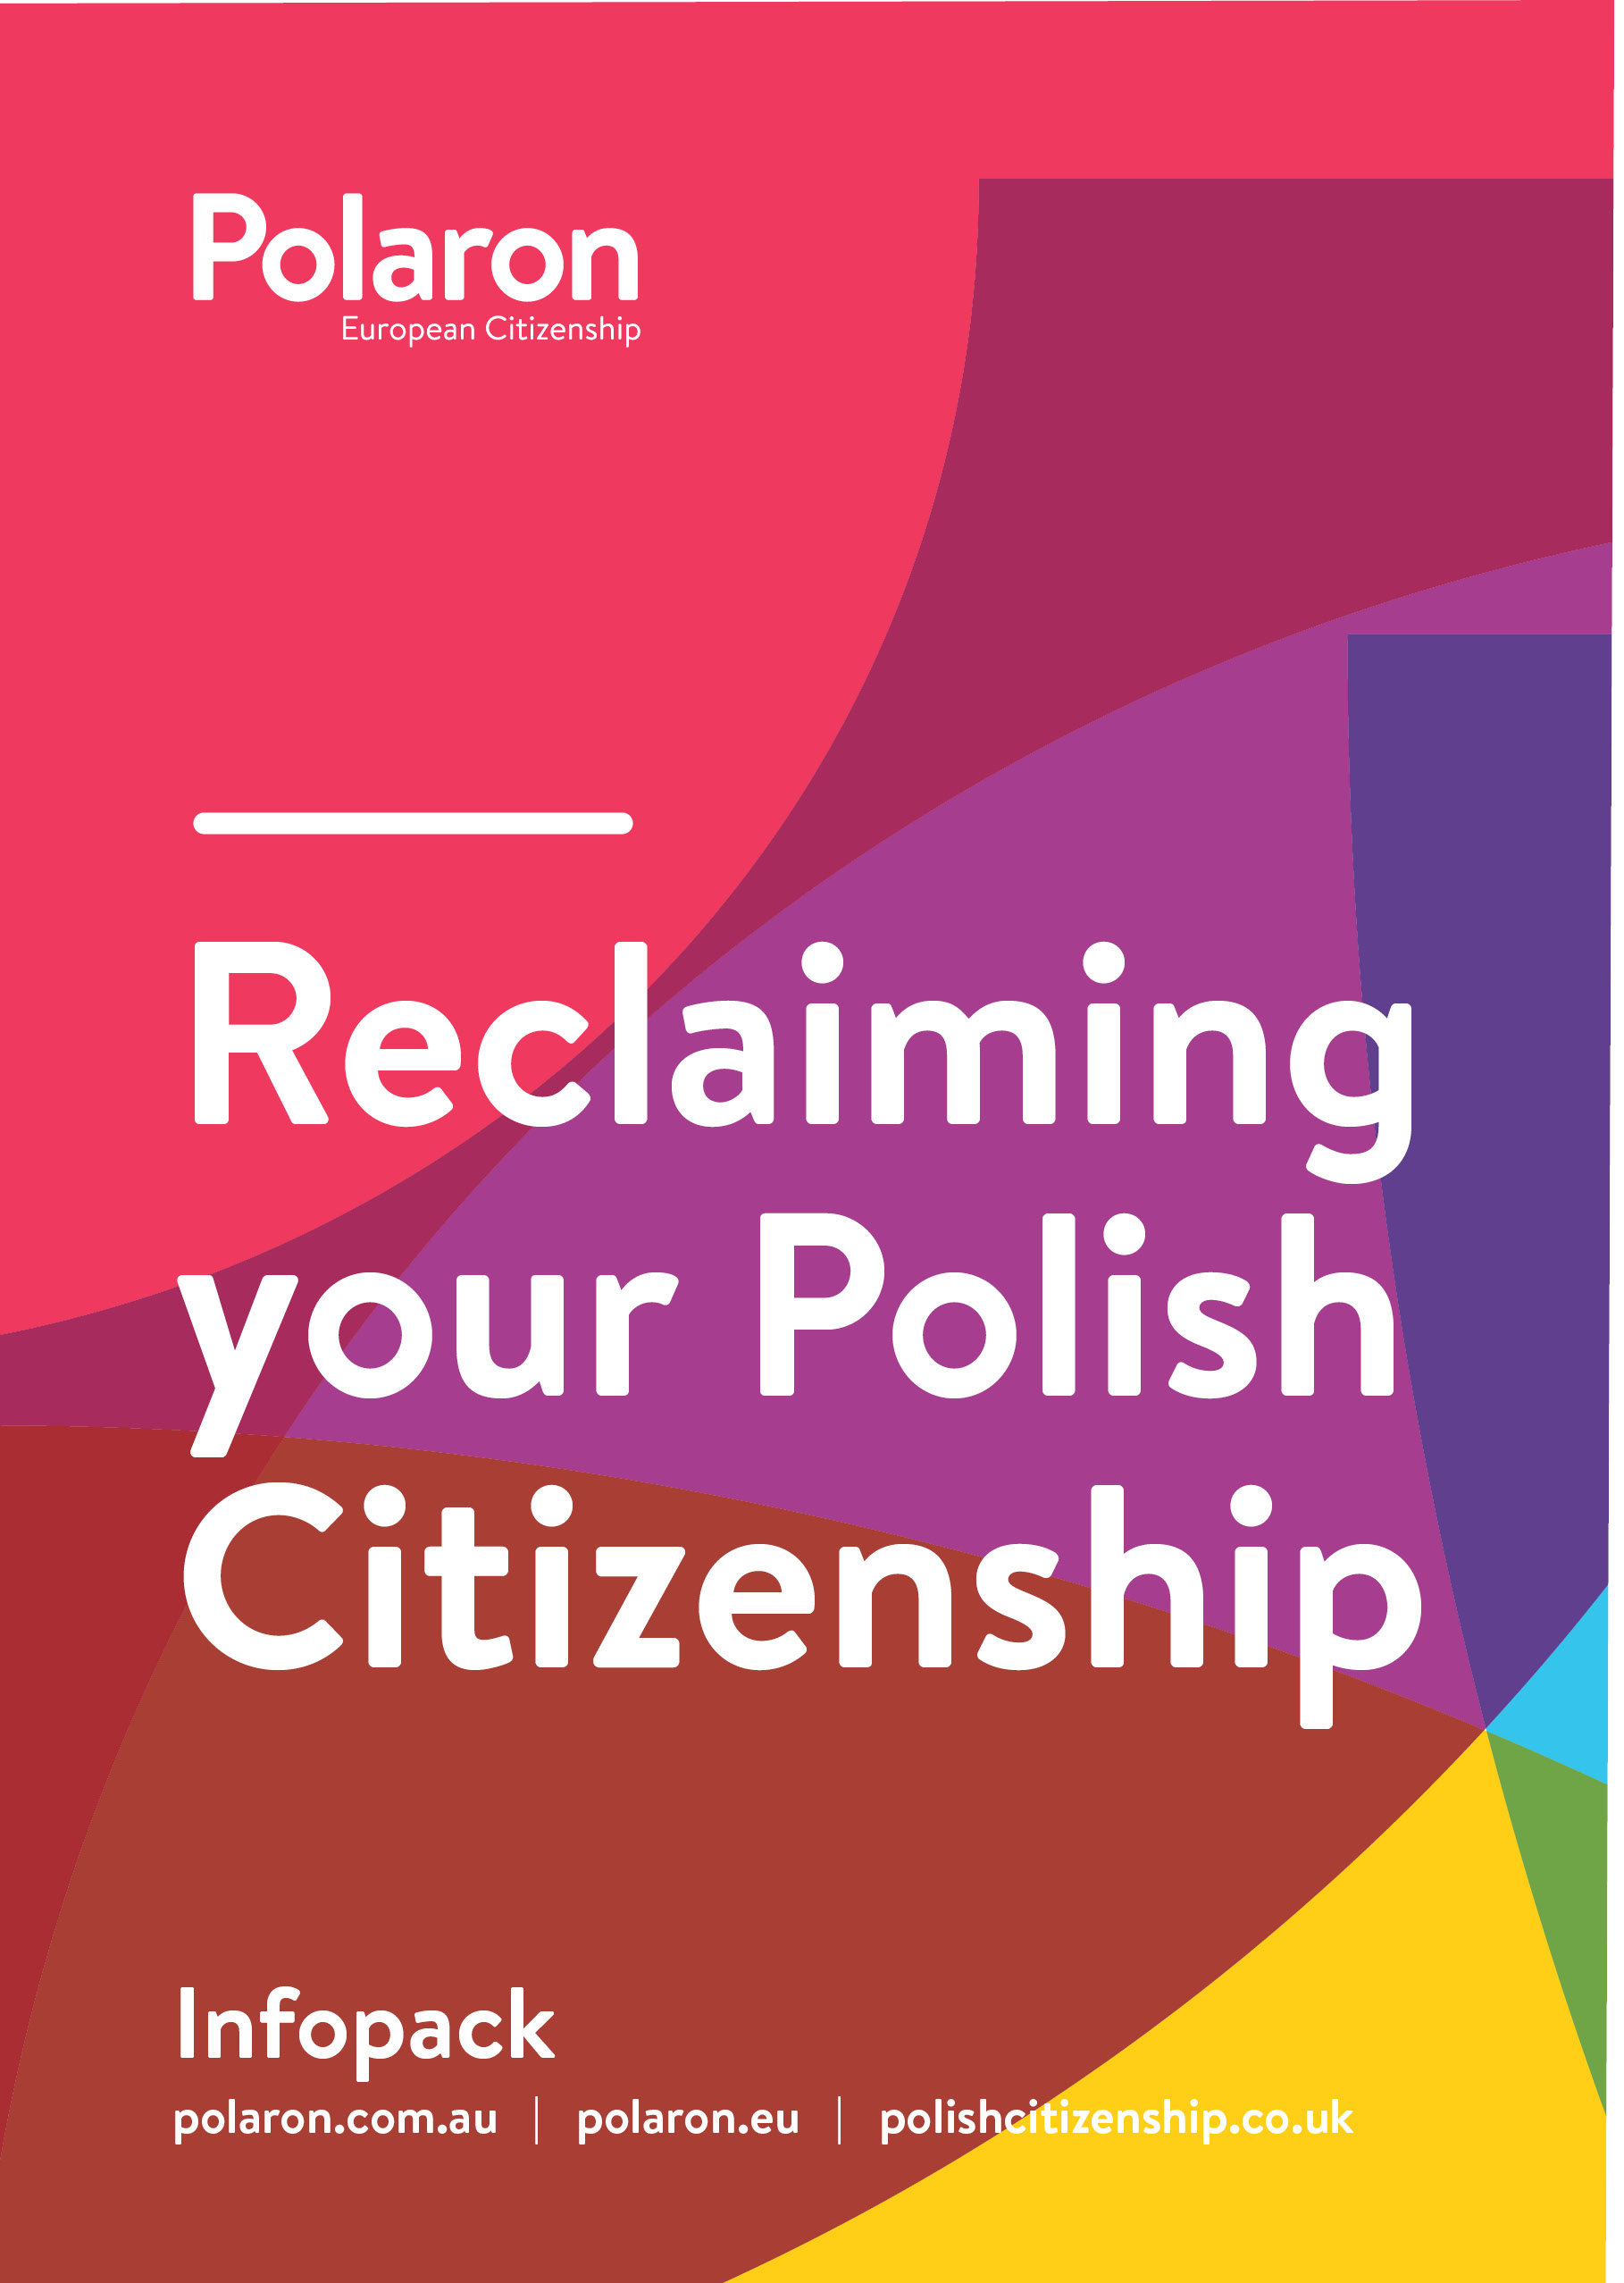 Reclaim Your Polish Citizenship Infopack